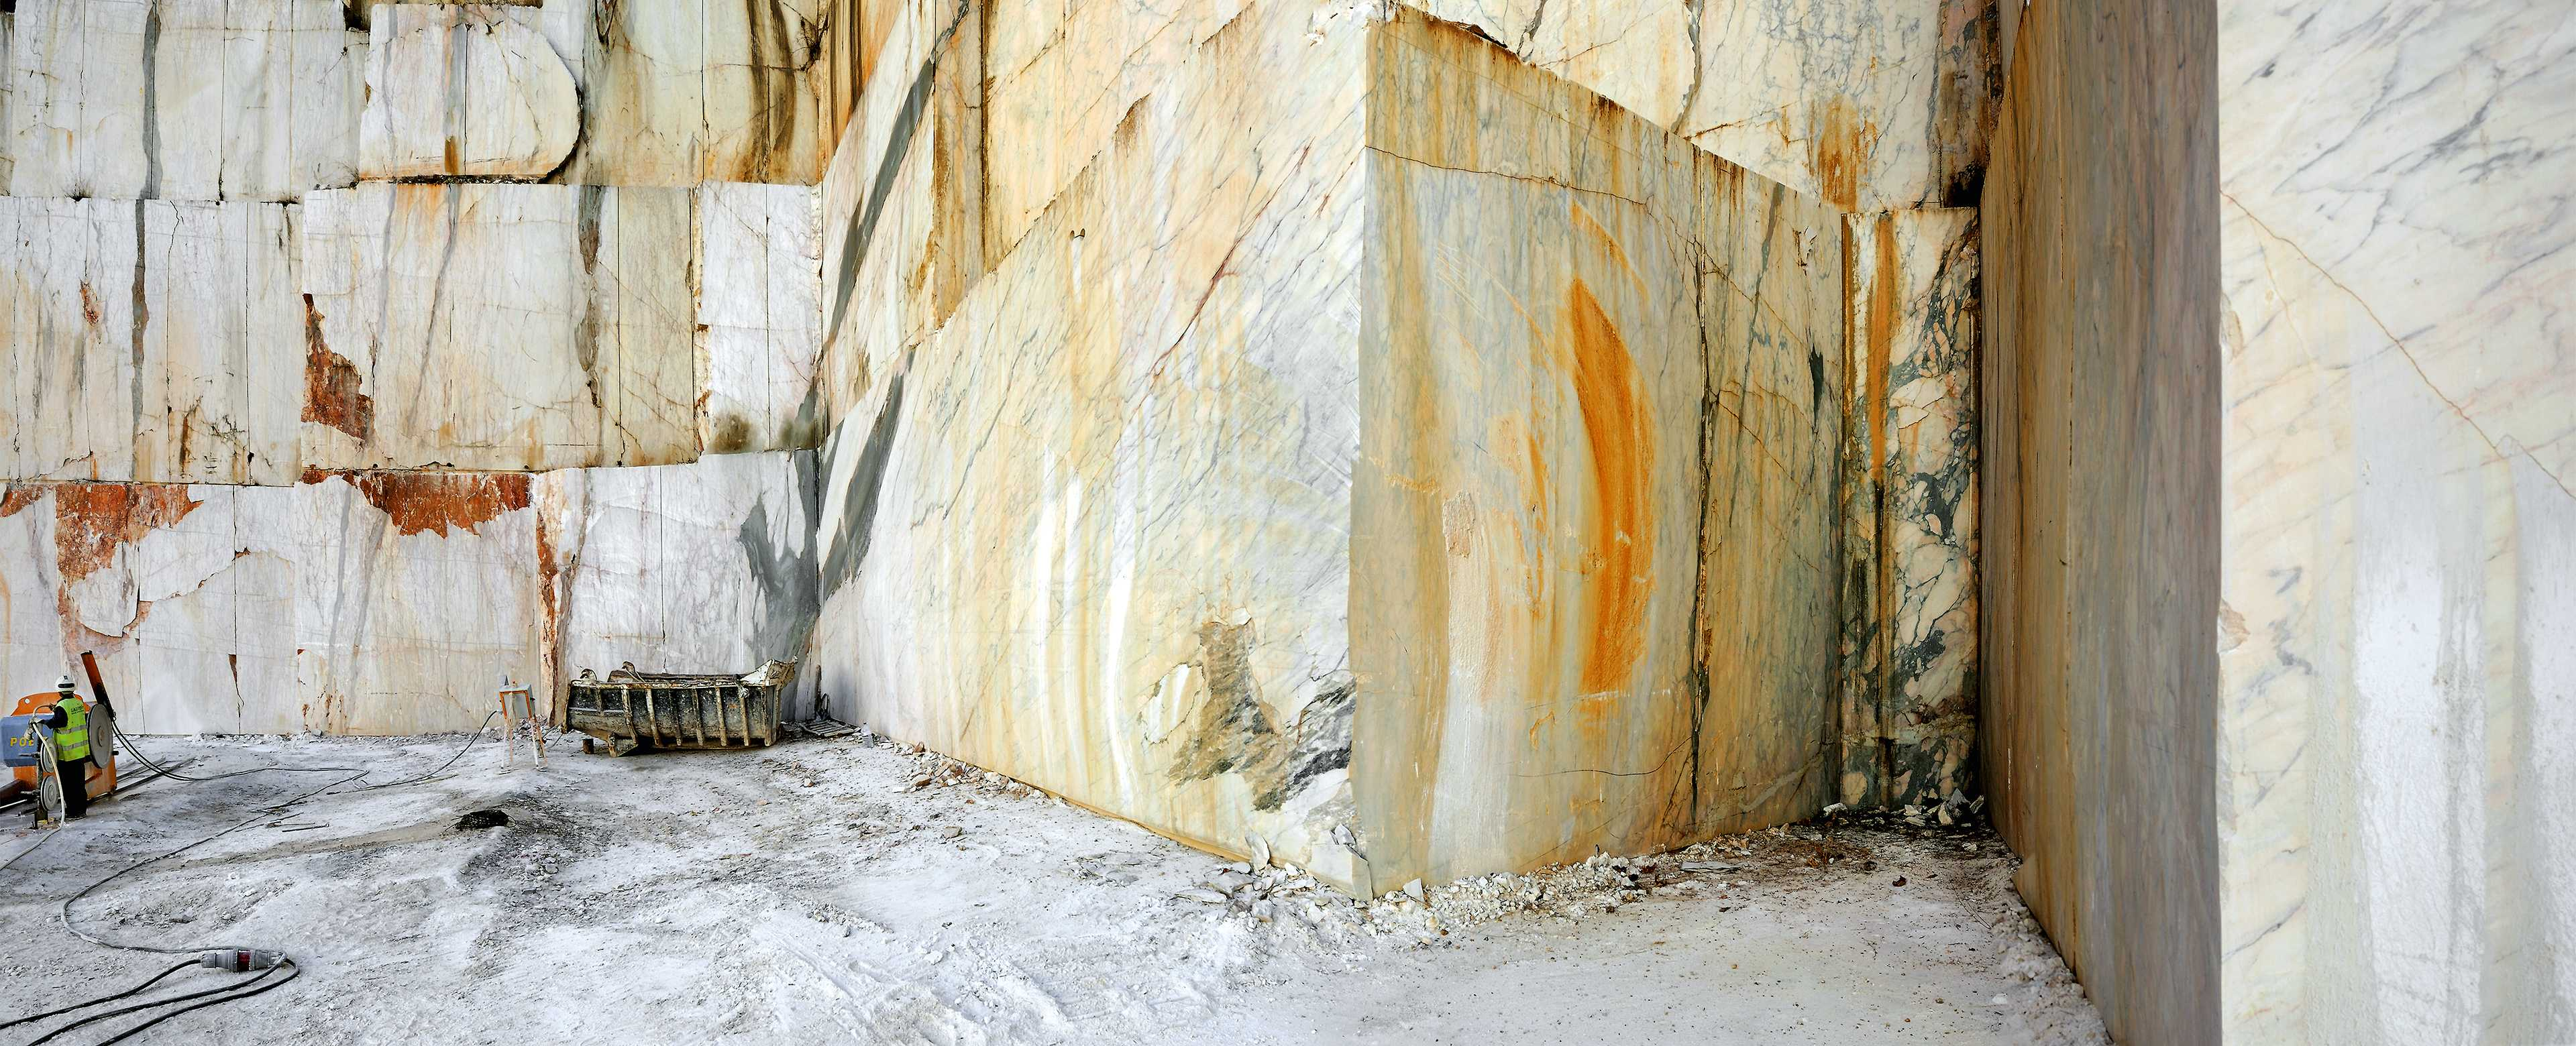 Pedreiras, Portrait of a Quarry  - 6 13 39